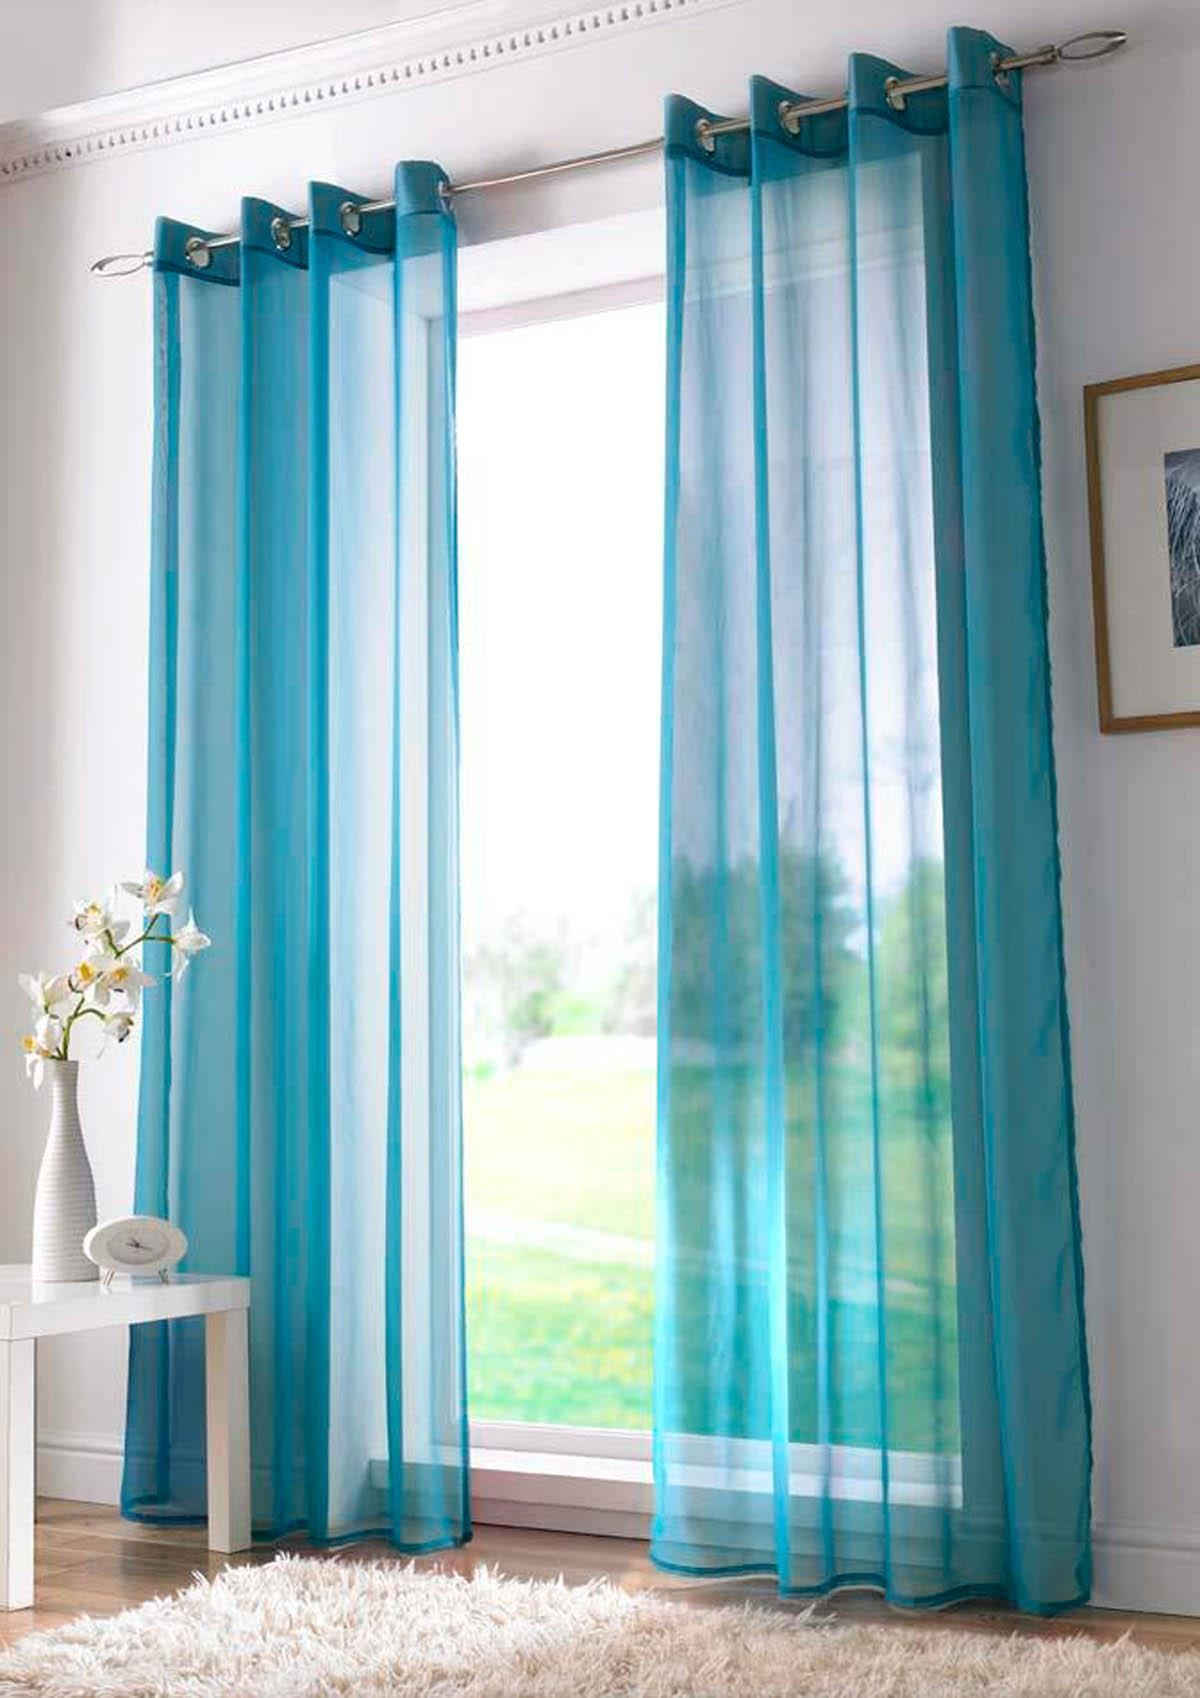 Voile curtain panel brown cheap green curtain voile uk delivery - Plain Ring Top Voile Panel